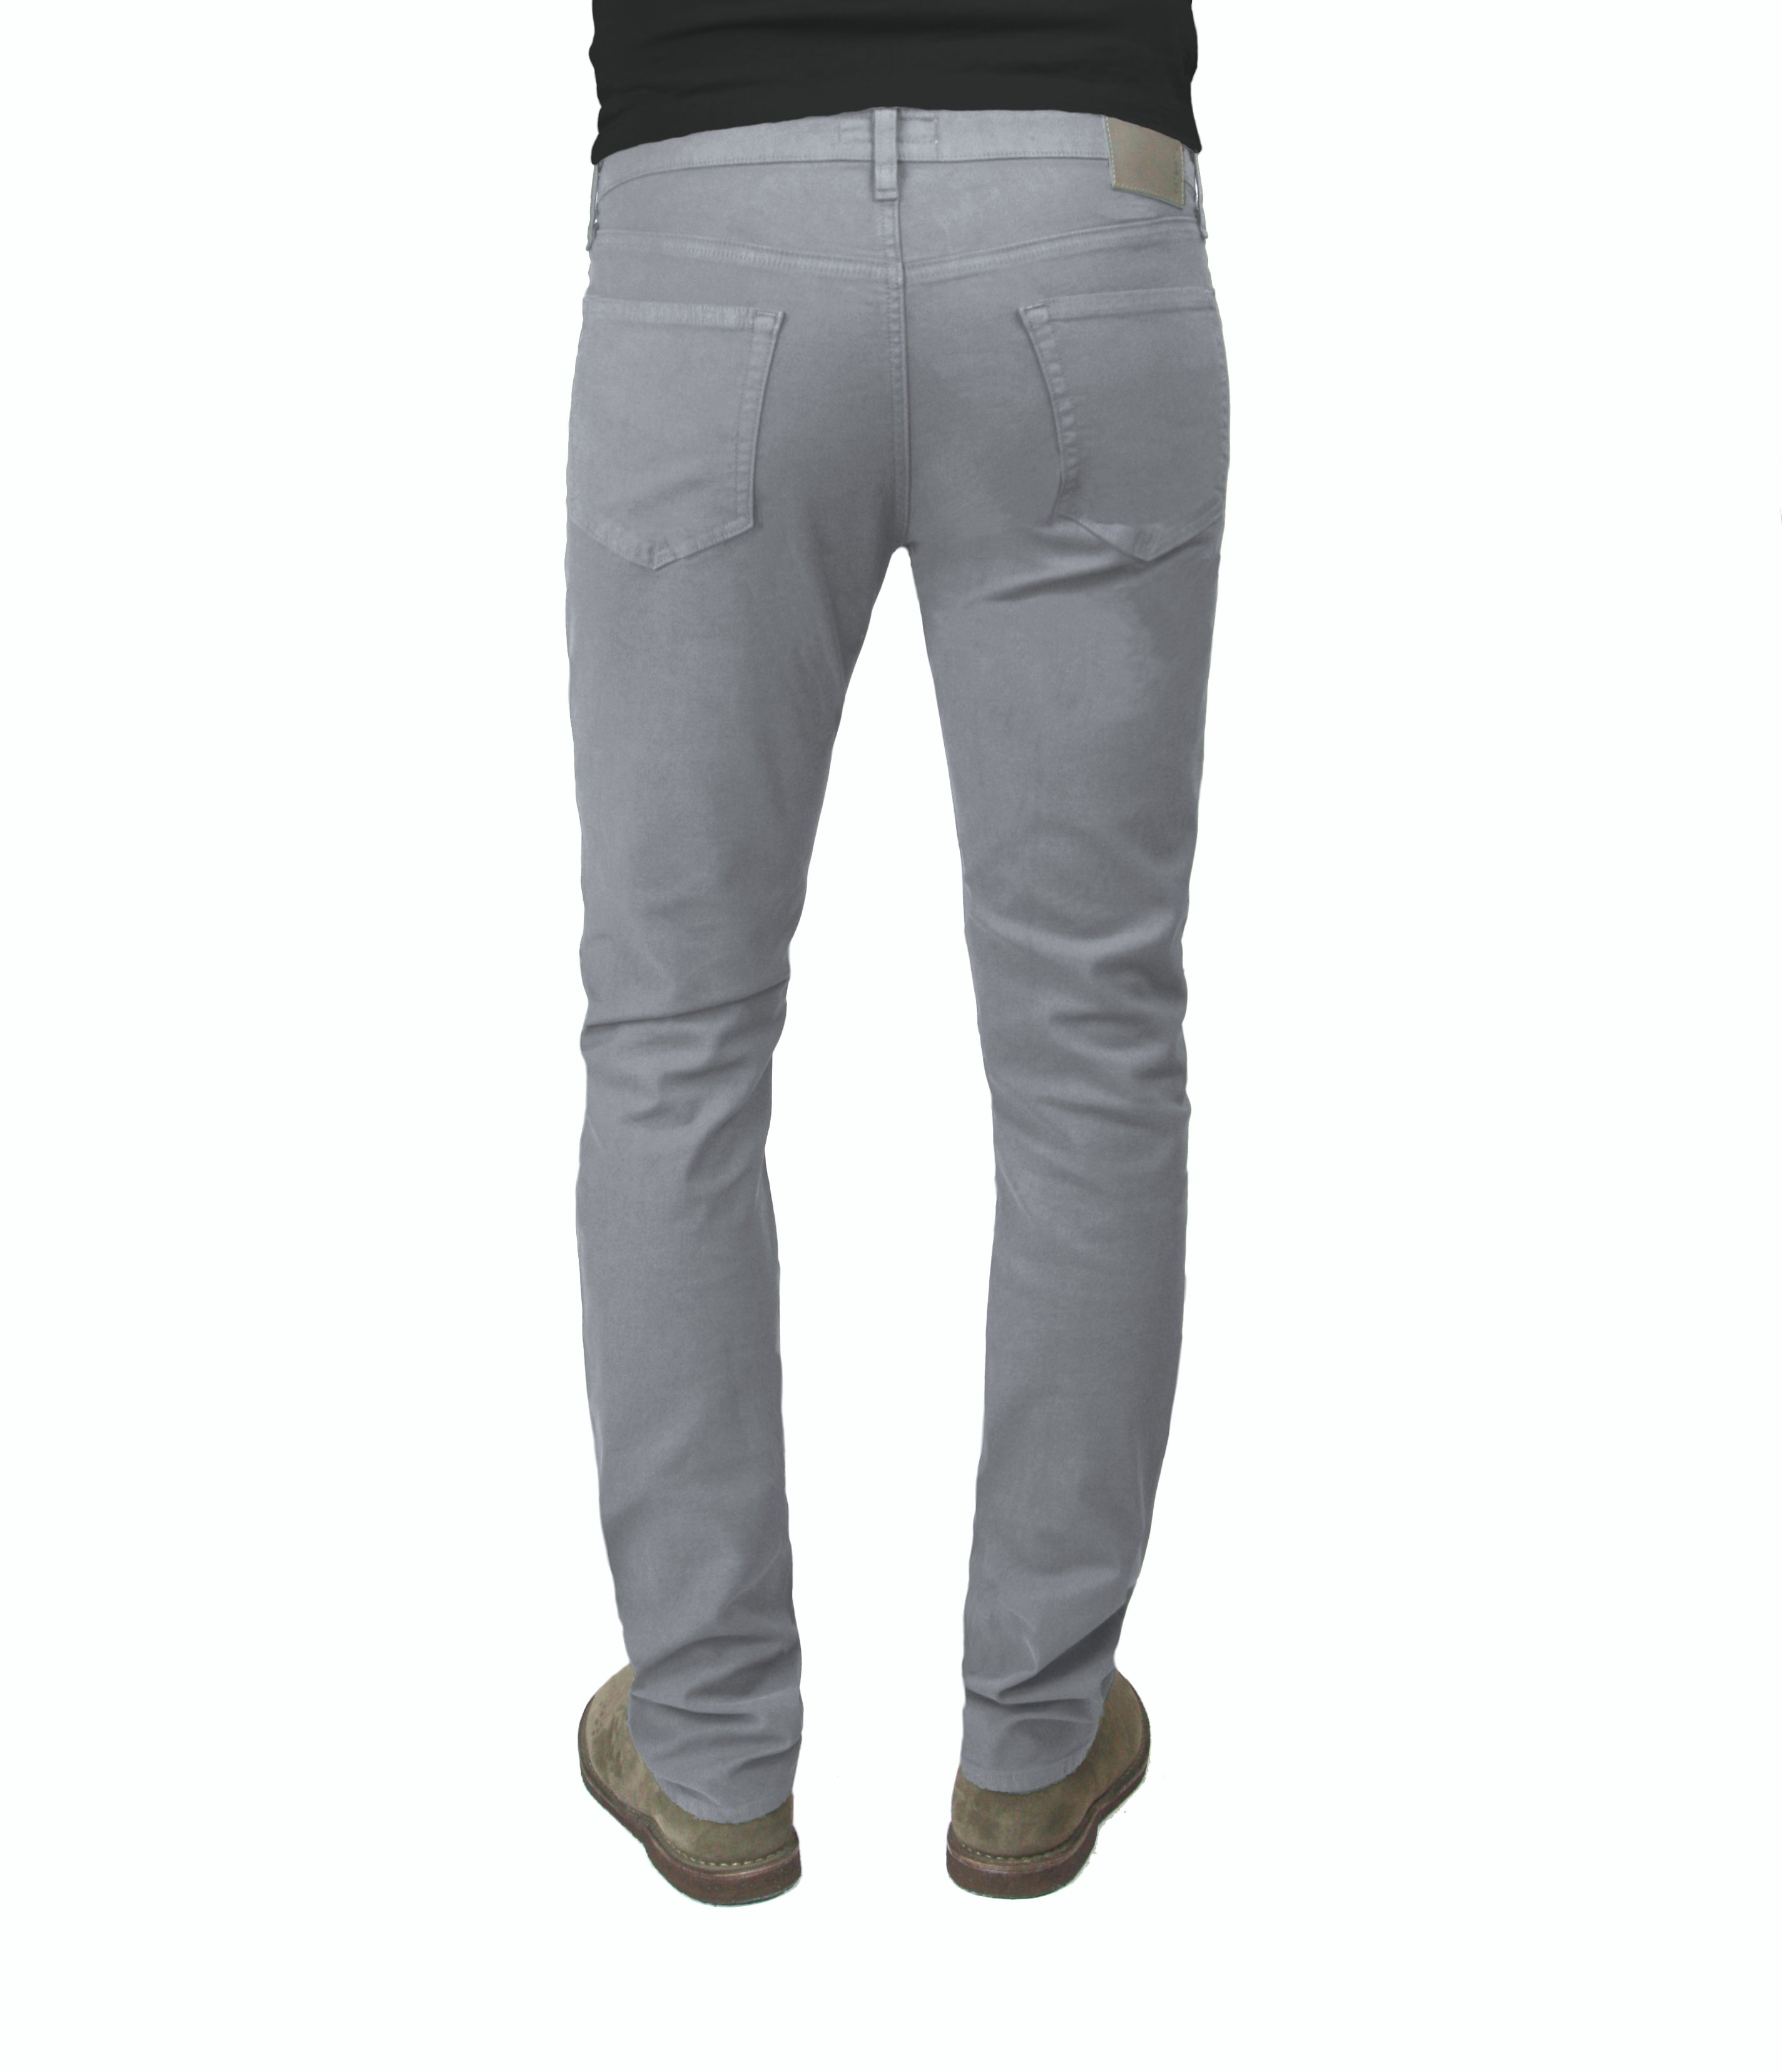 Back of S.M.N Studio's Hunter in Moonstone Men's Twill Pants - Slim comfort stretch twill pants in a grey color